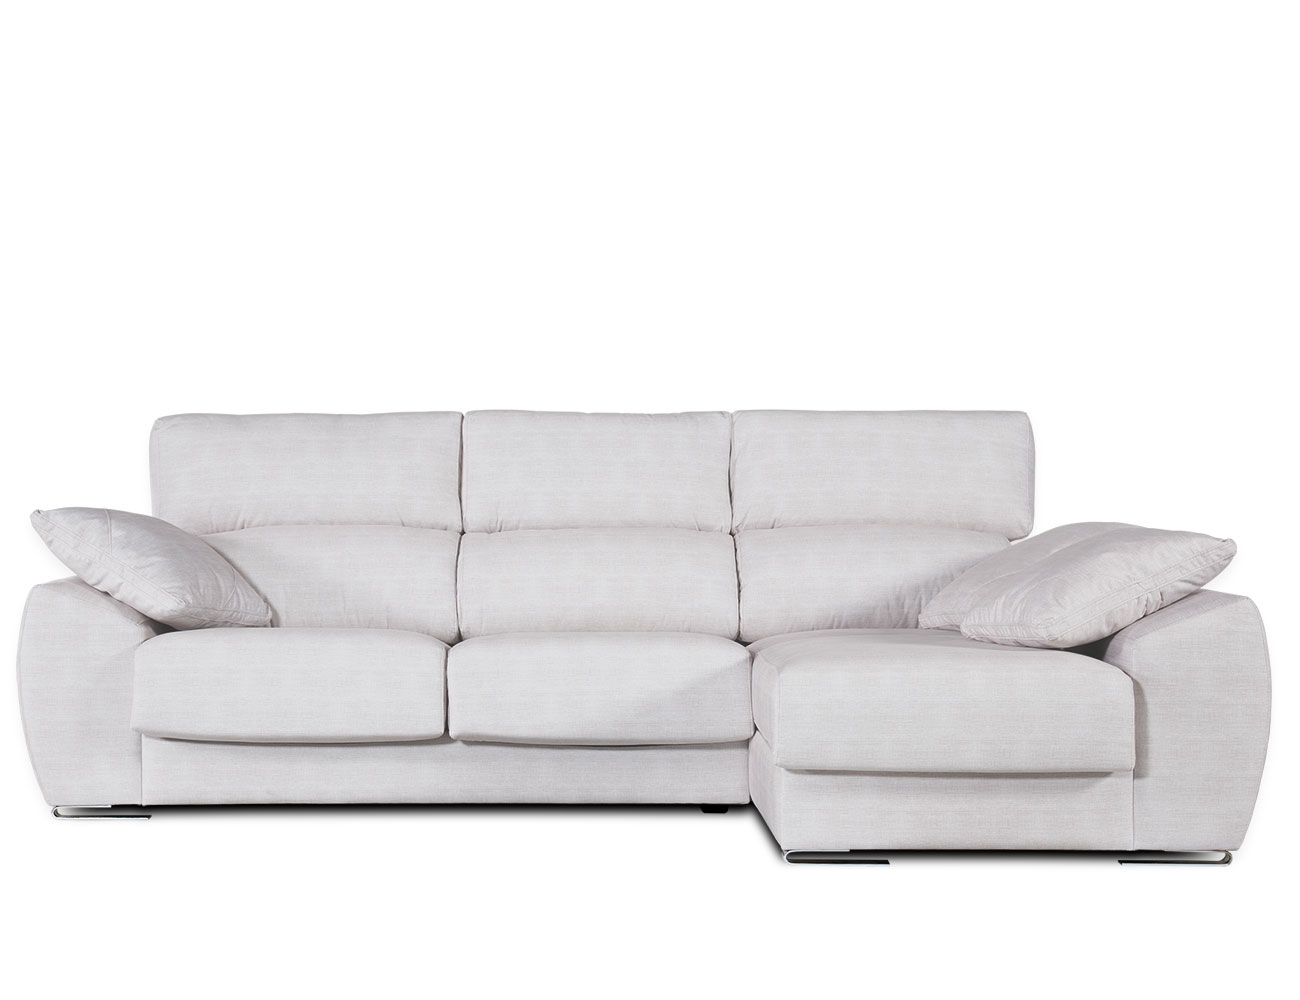 Sofa chaiselongue moderno blanco3